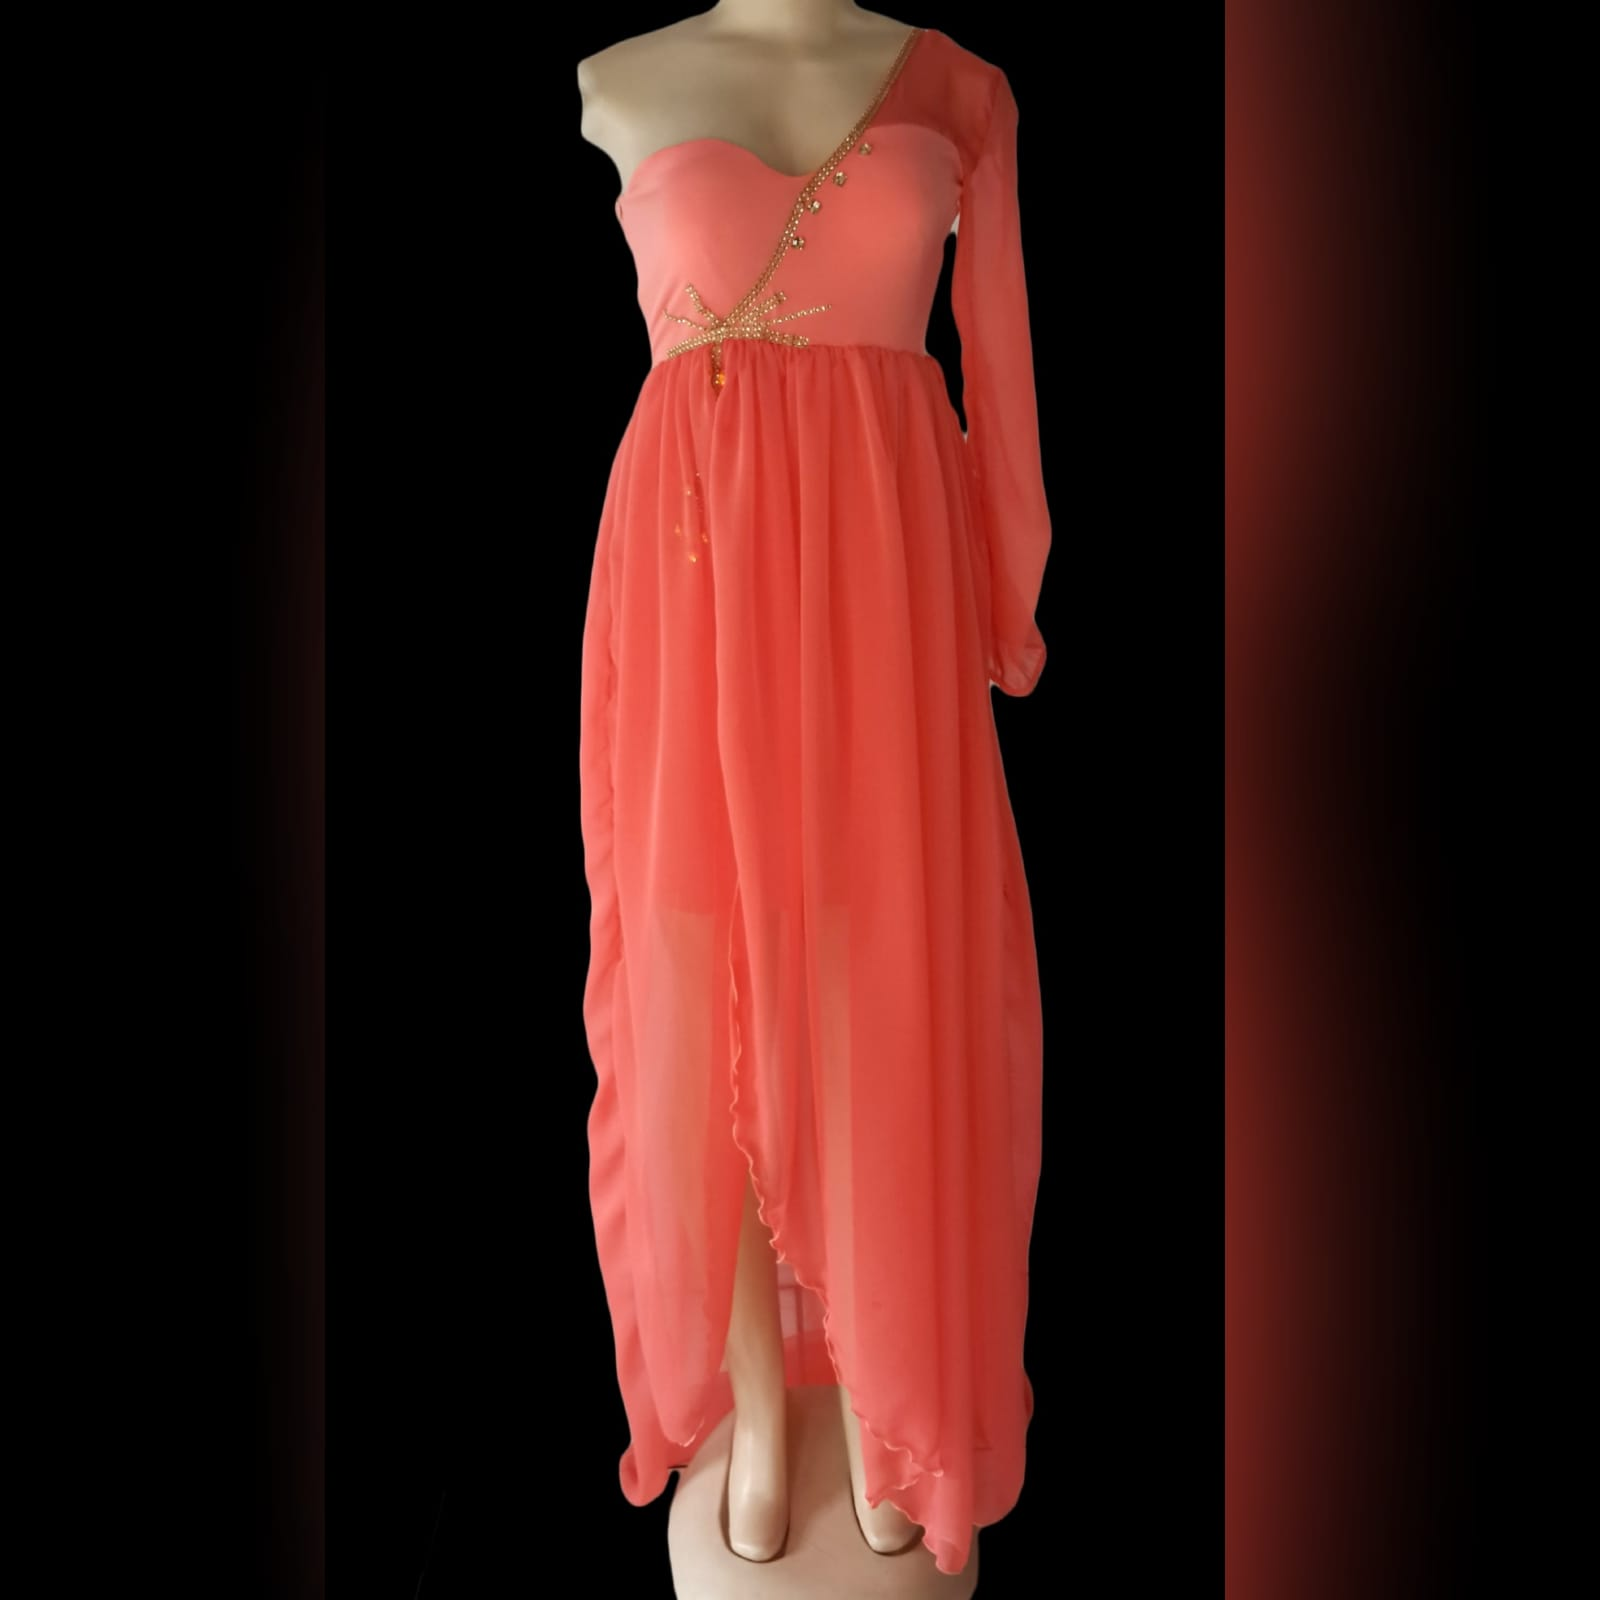 Bright coral flowy engagement dress 4 bright coral flowy engagement dress. Mini dress with a one shoulder and sleeve in chiffon, with an added gathered chiffon skirt part with a slit, dress detailed with gold bead work